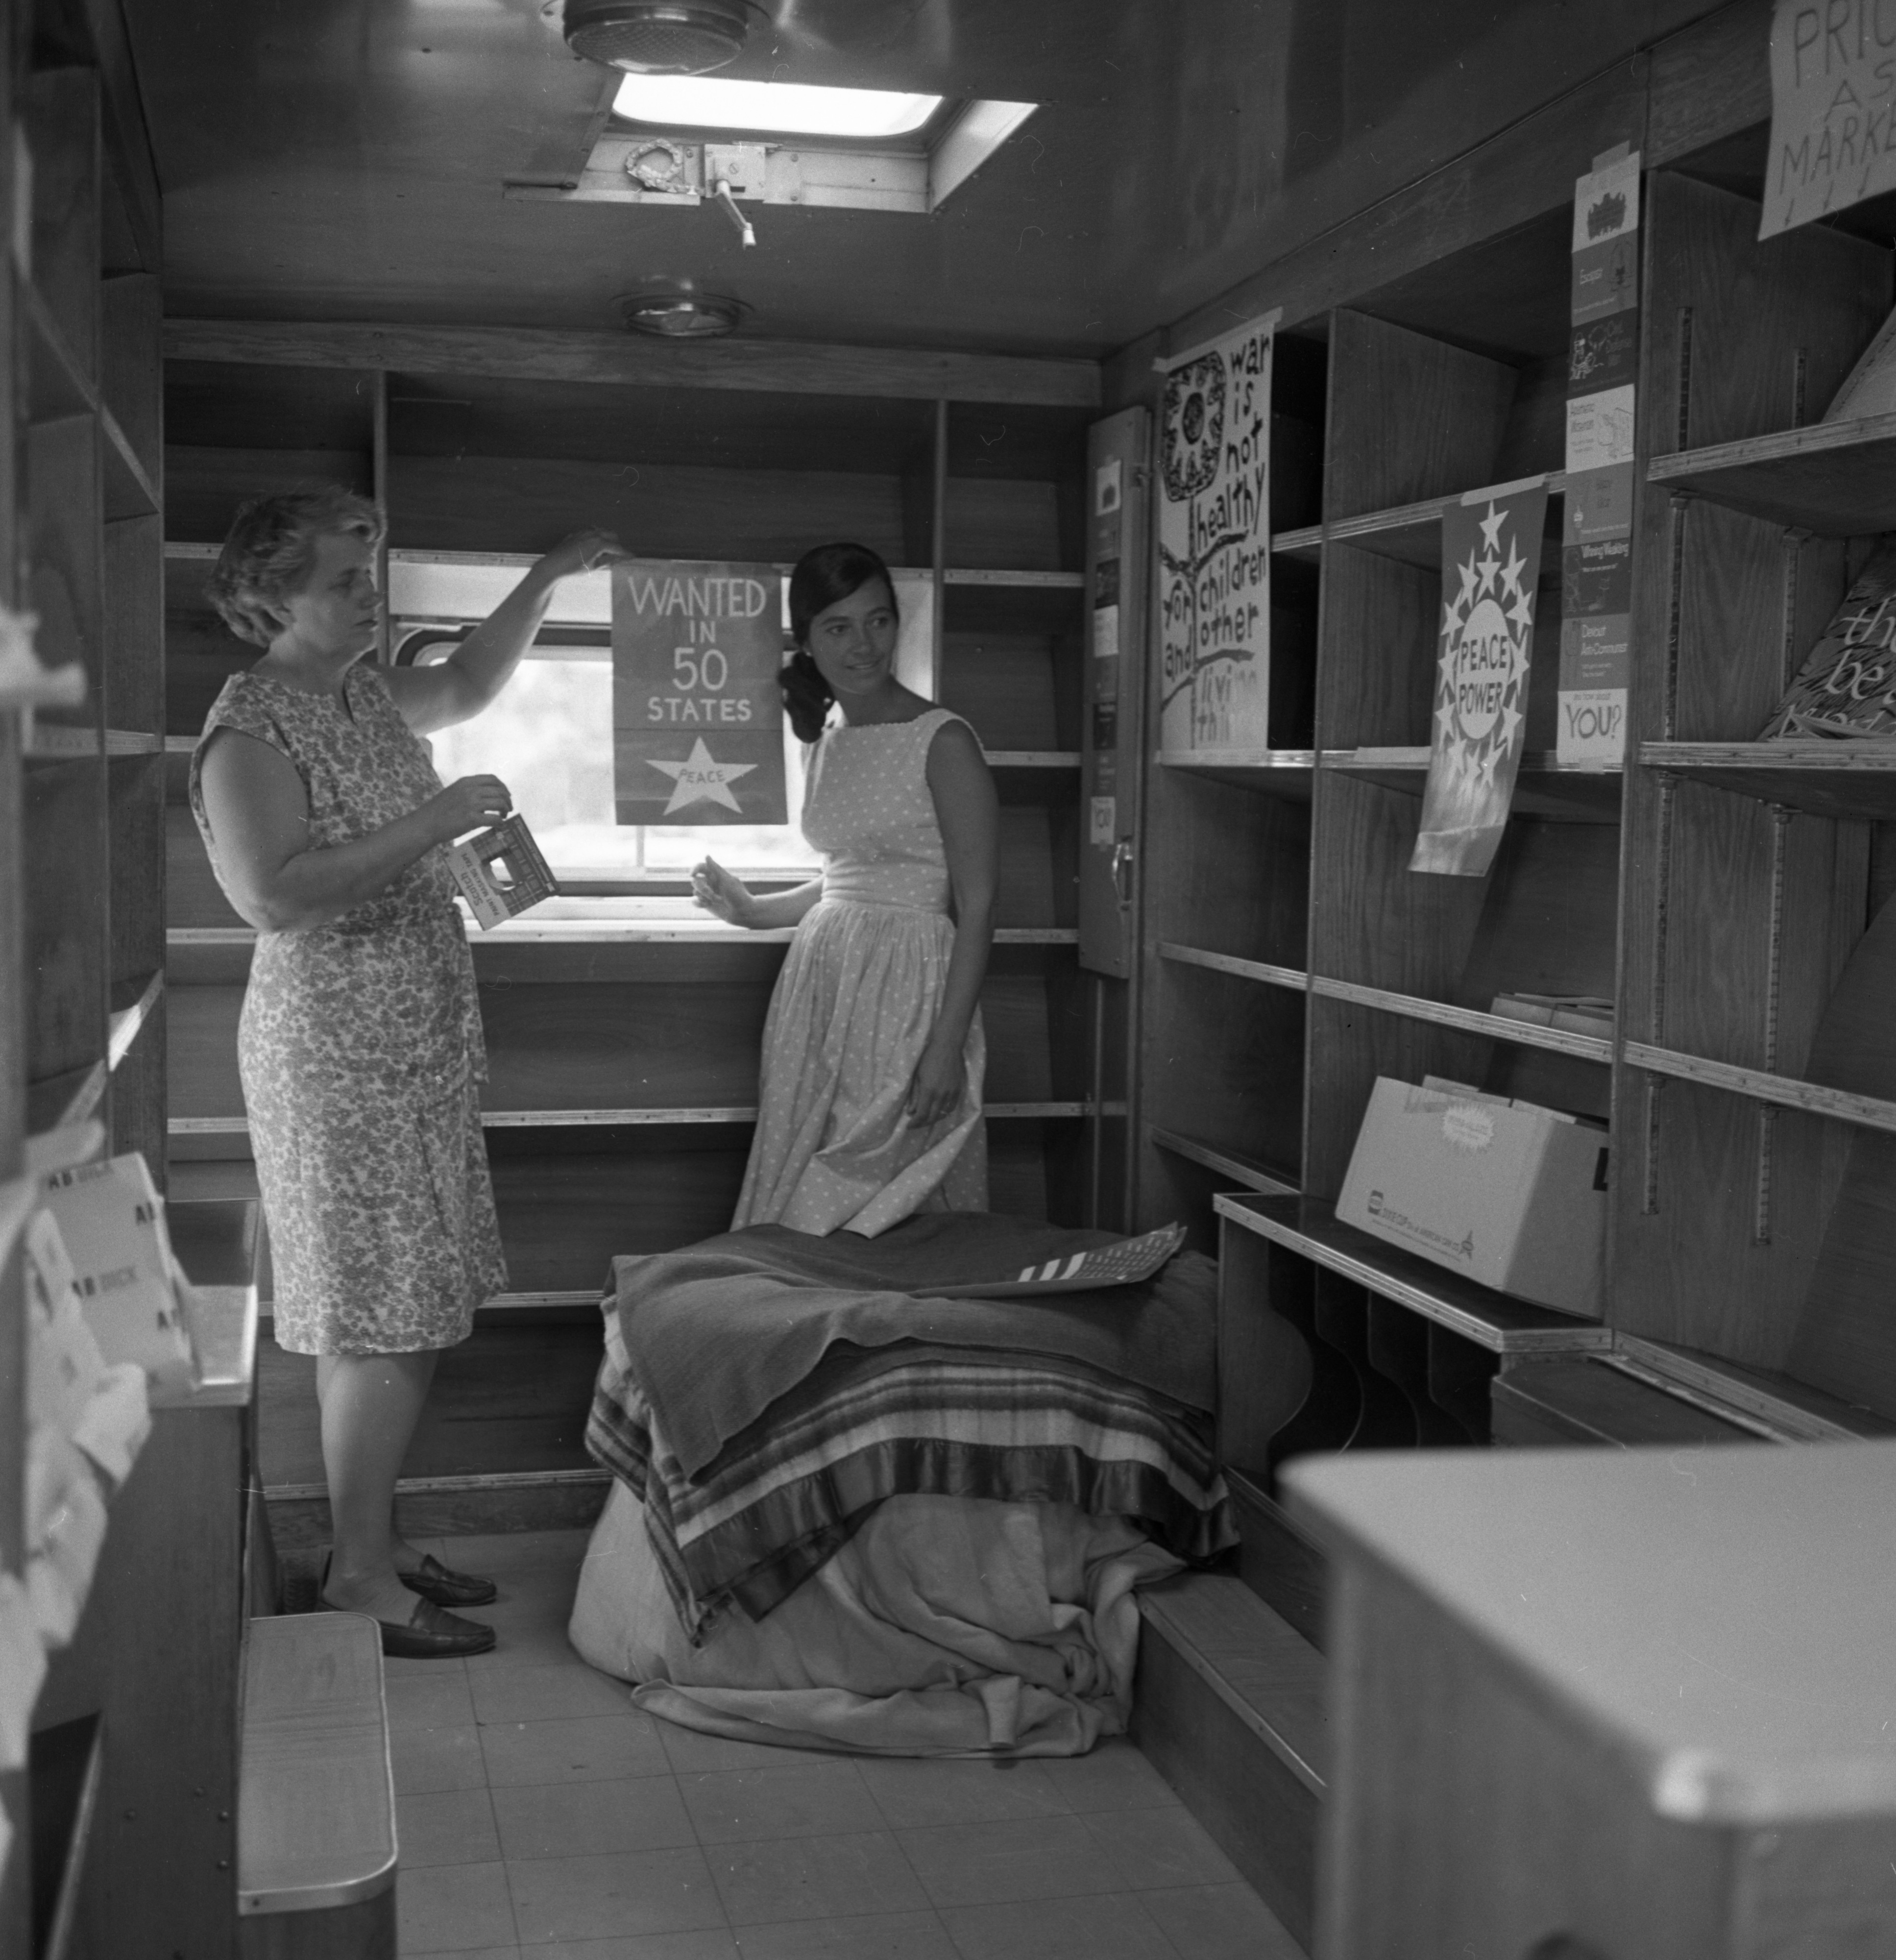 Mrs. Lewis B. Kellum and Mrs. Andrew Zweifler inside the Peacemobile, July 1967 image